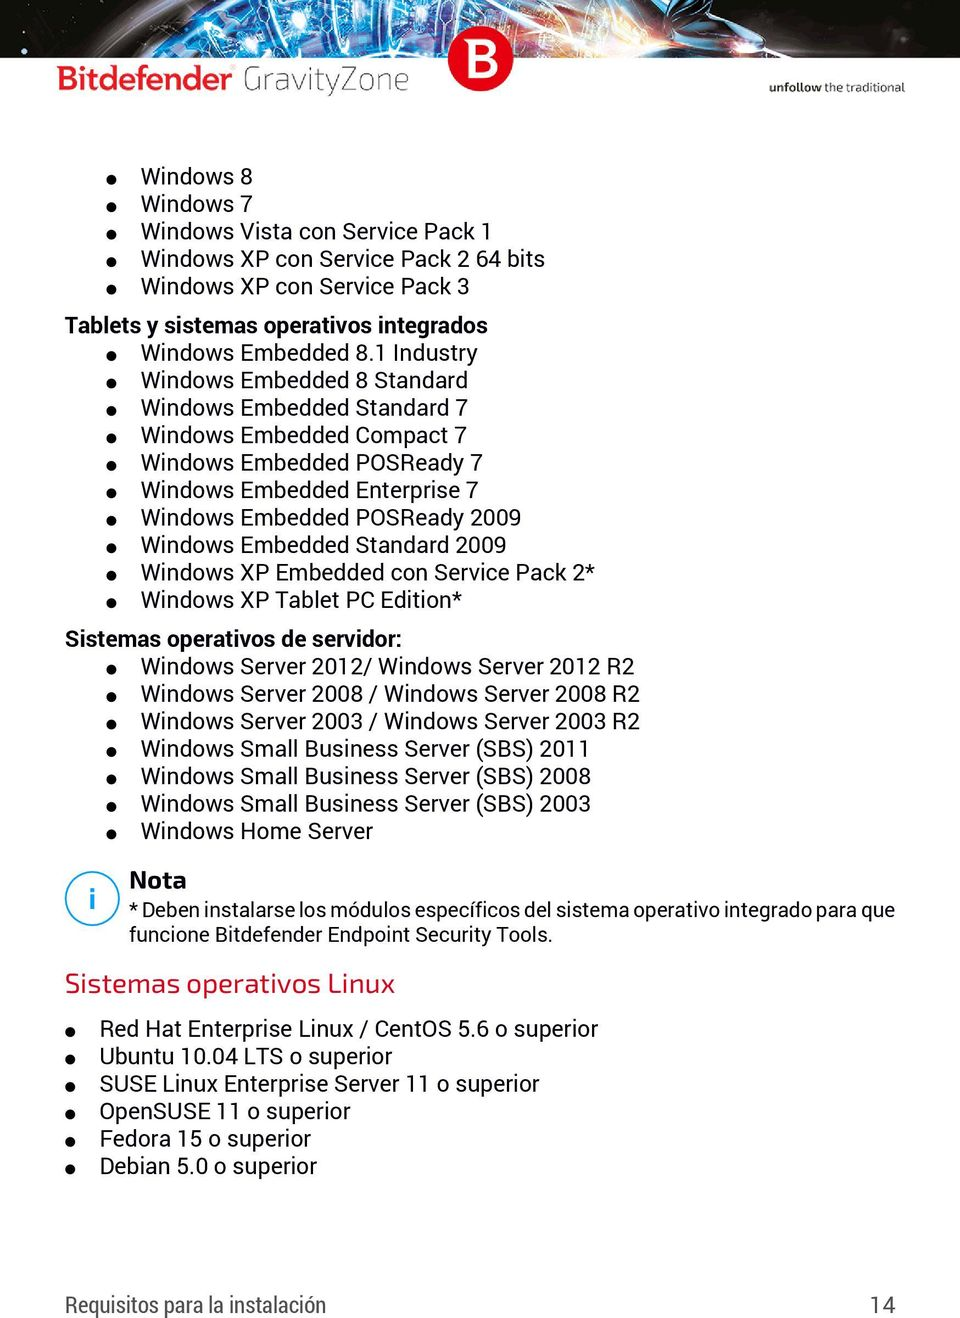 Standard 2009 Windows XP Embedded con Service Pack 2* Windows XP Tablet PC Edition* Sistemas operativos de servidor: Windows Server 2012/ Windows Server 2012 R2 Windows Server 2008 / Windows Server